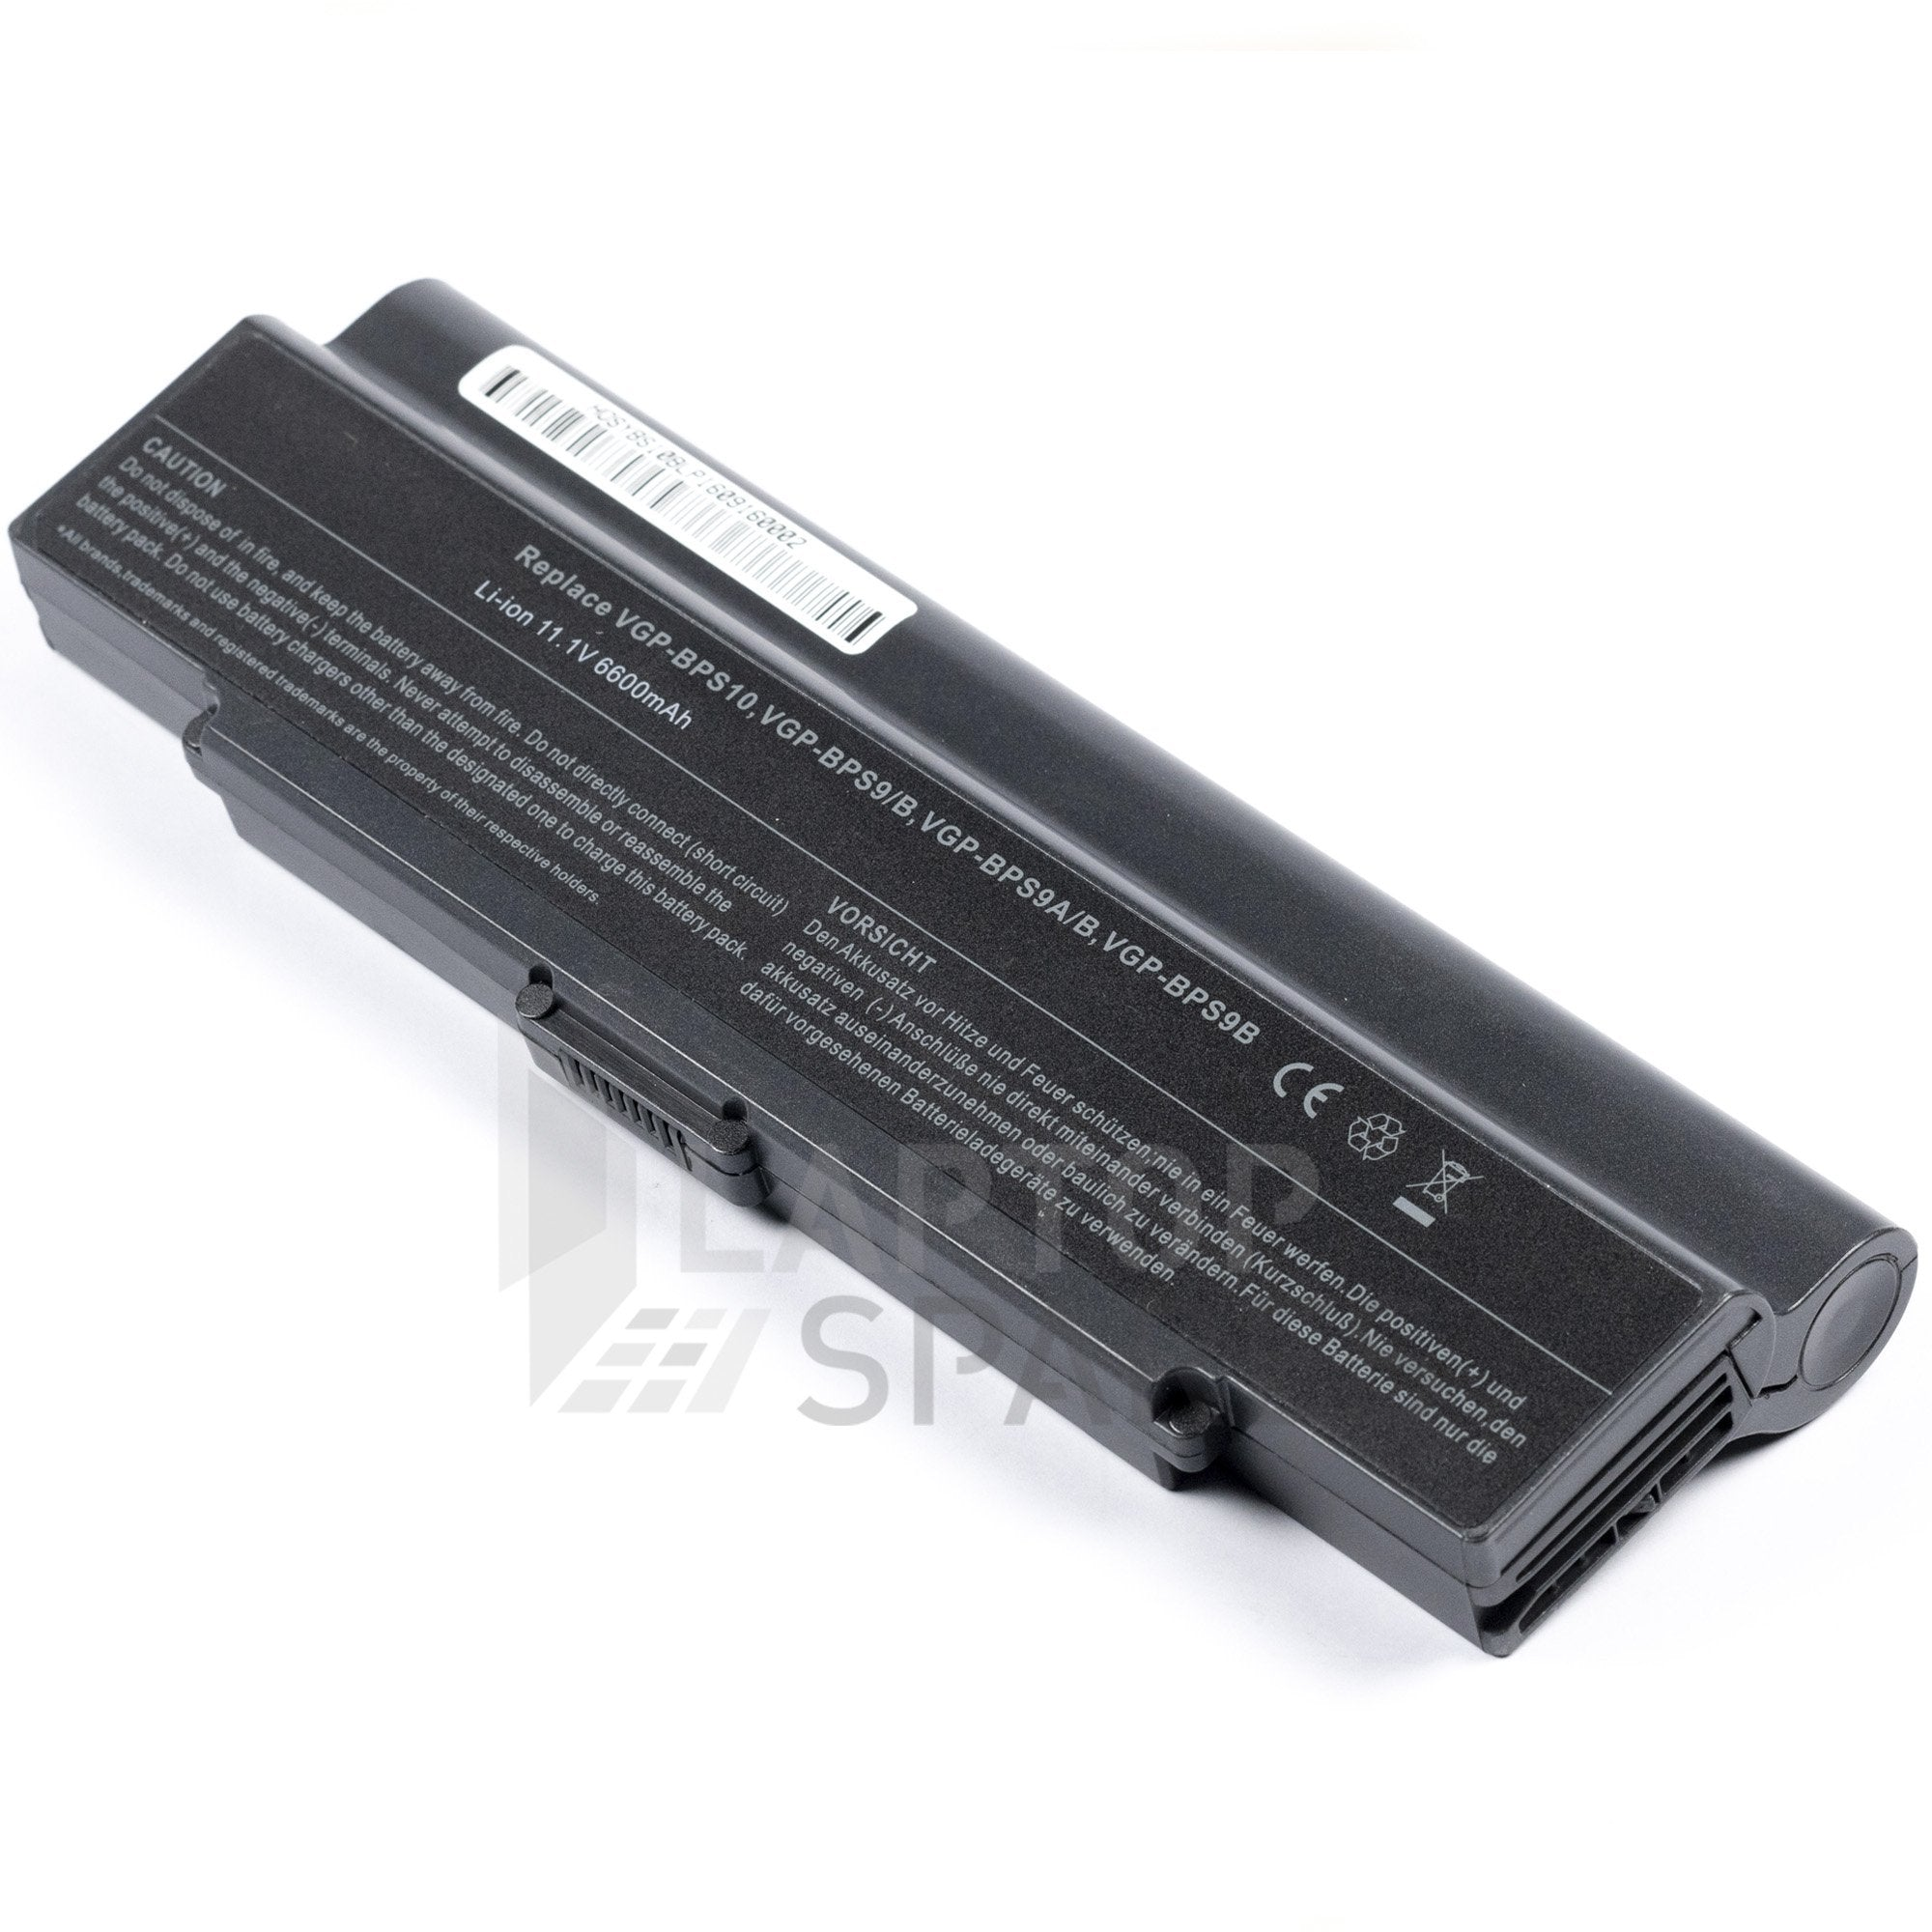 Sony Vaio VGN AR570 AR61M AR630E 6600mAh 9 Cell Battery